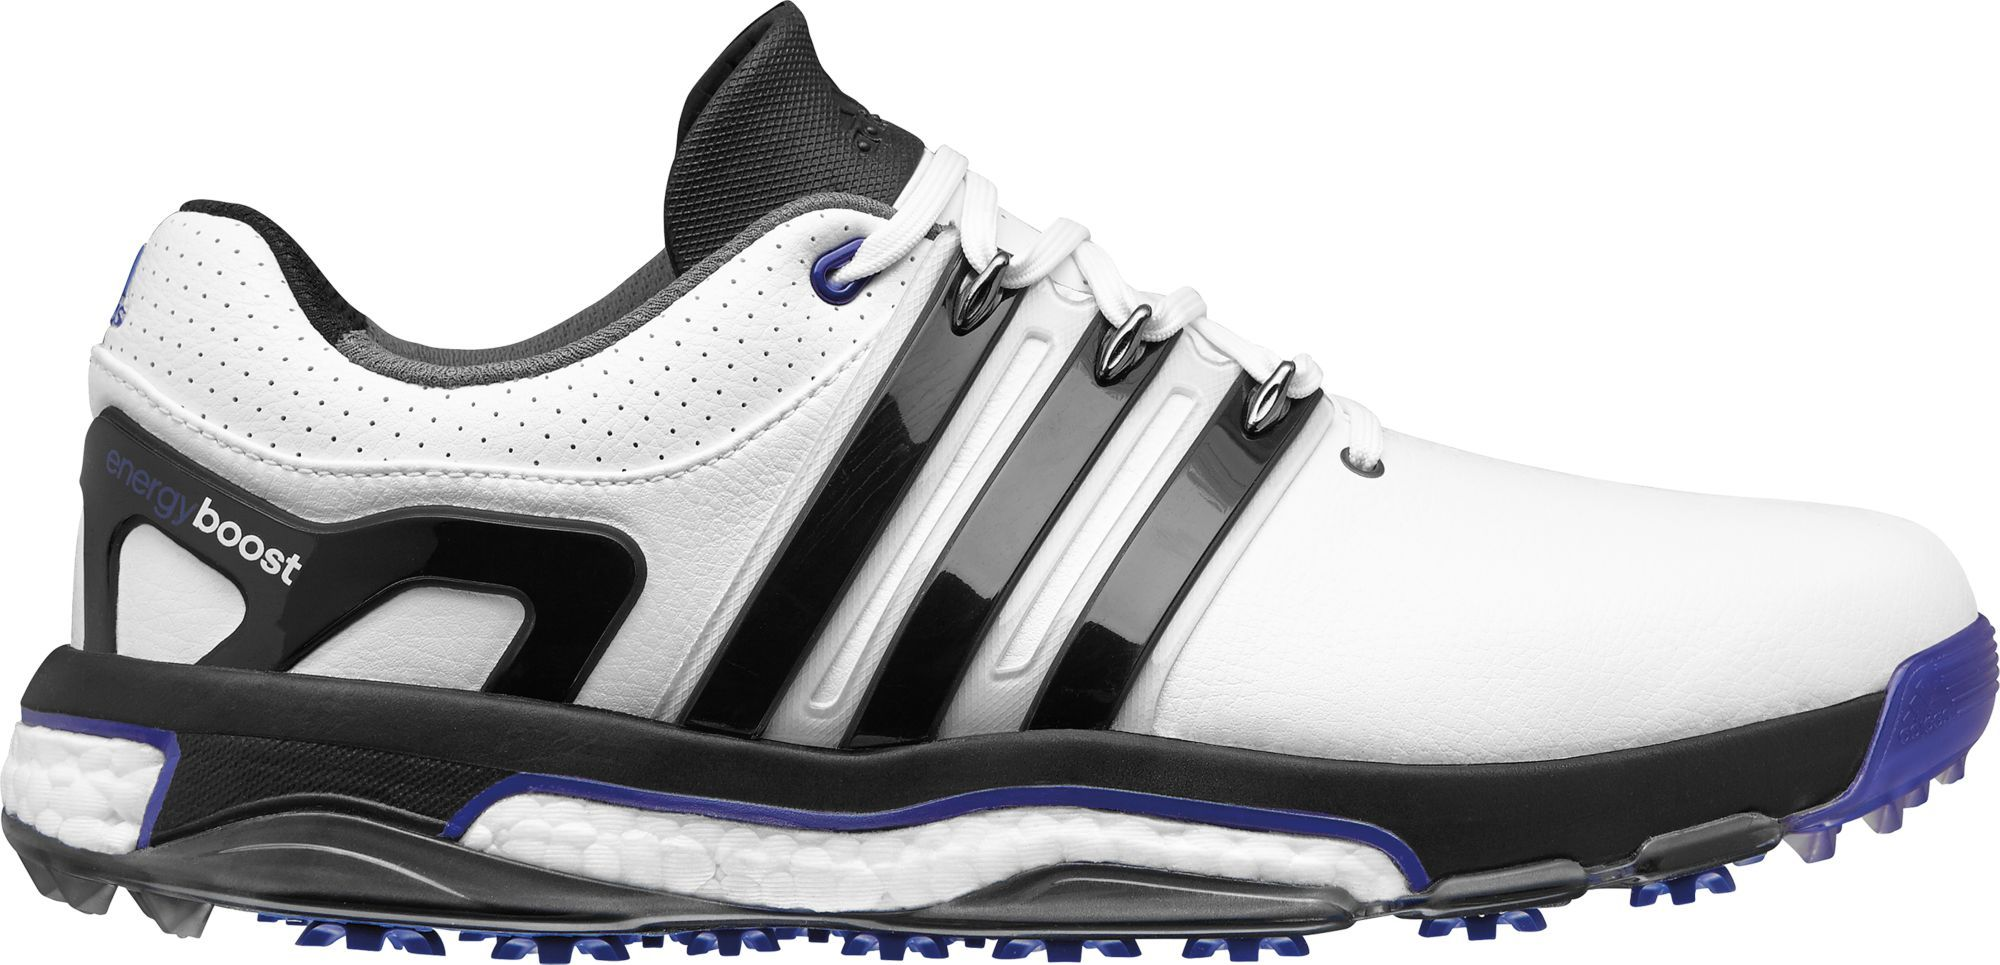 Adidas Boost Golf Shoes Price